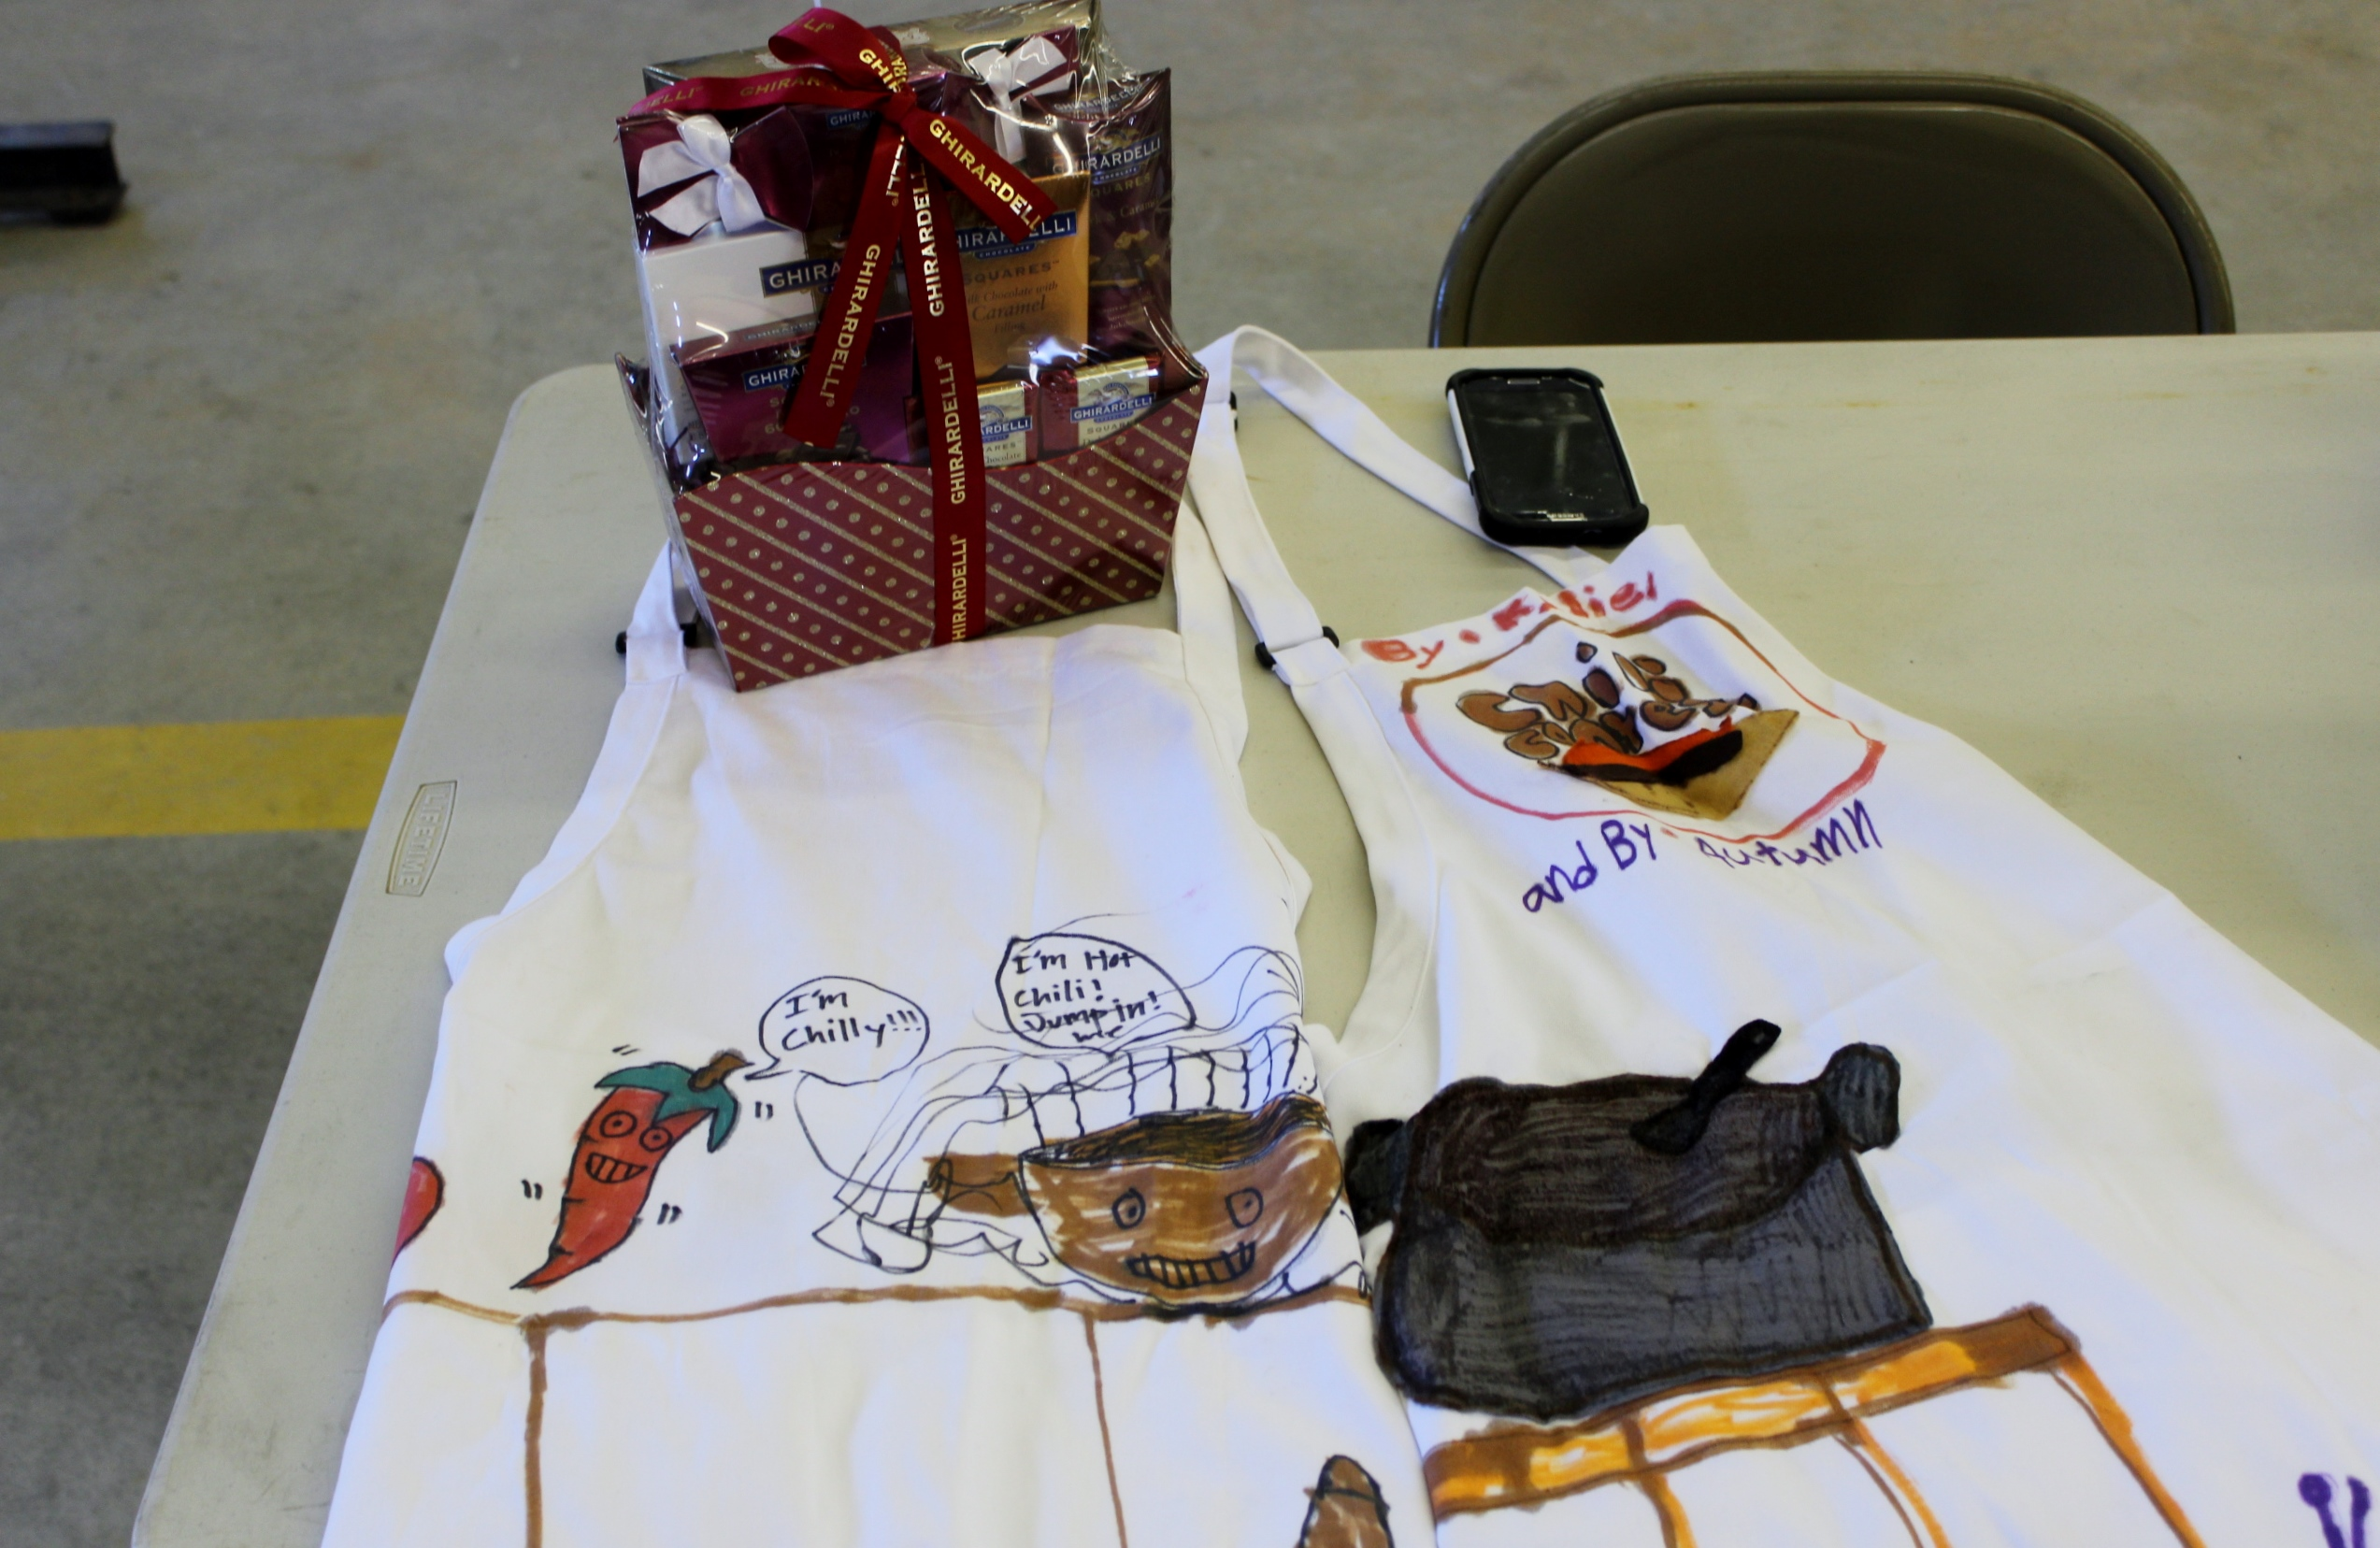 The New Suncook School Art Class once again designed the aprons for the winners!